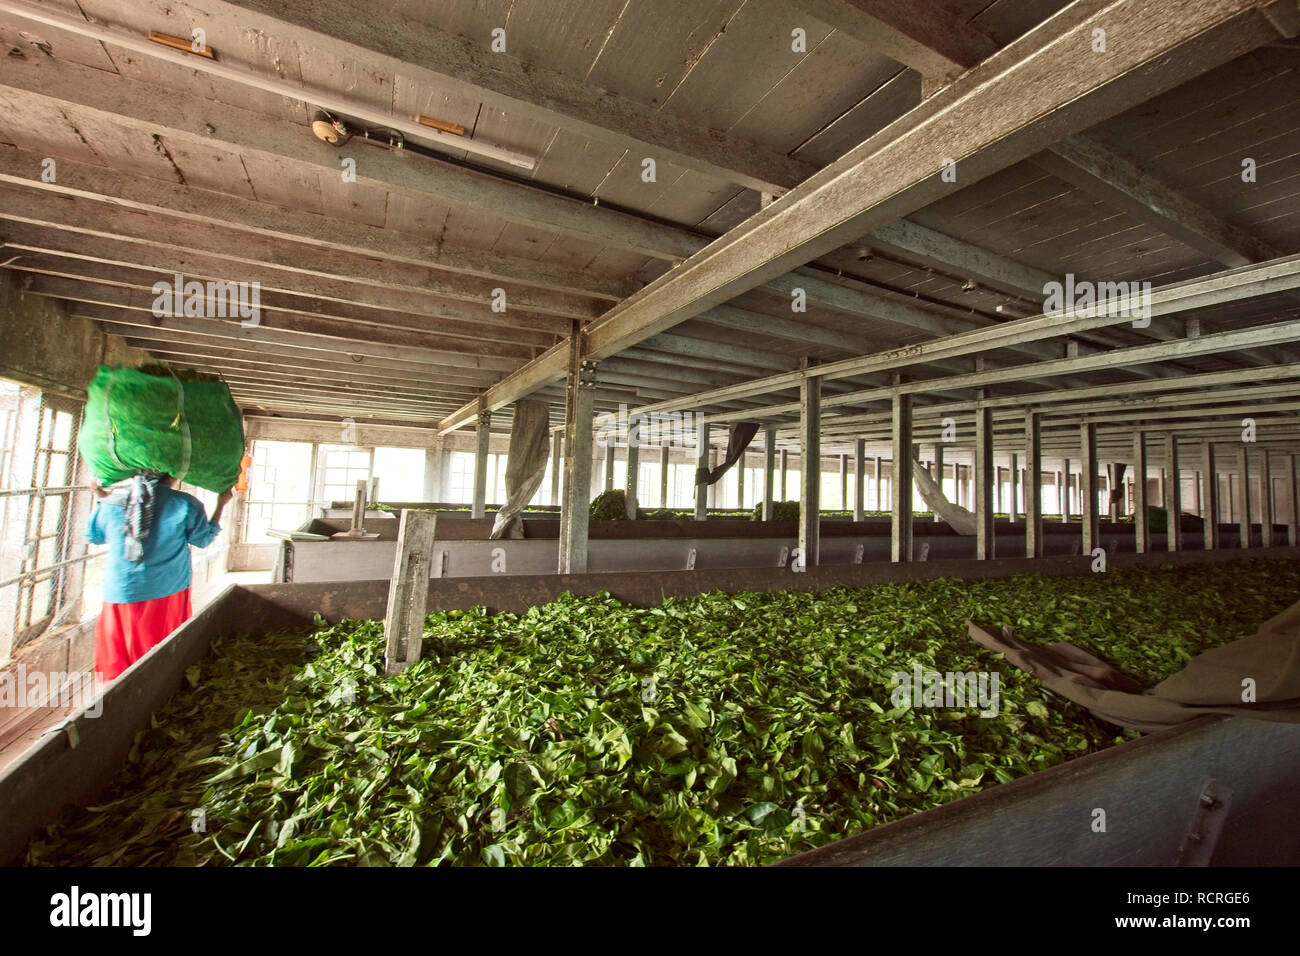 Munnar tea plantation with workers picking tea leaves from the plants. - Stock Image